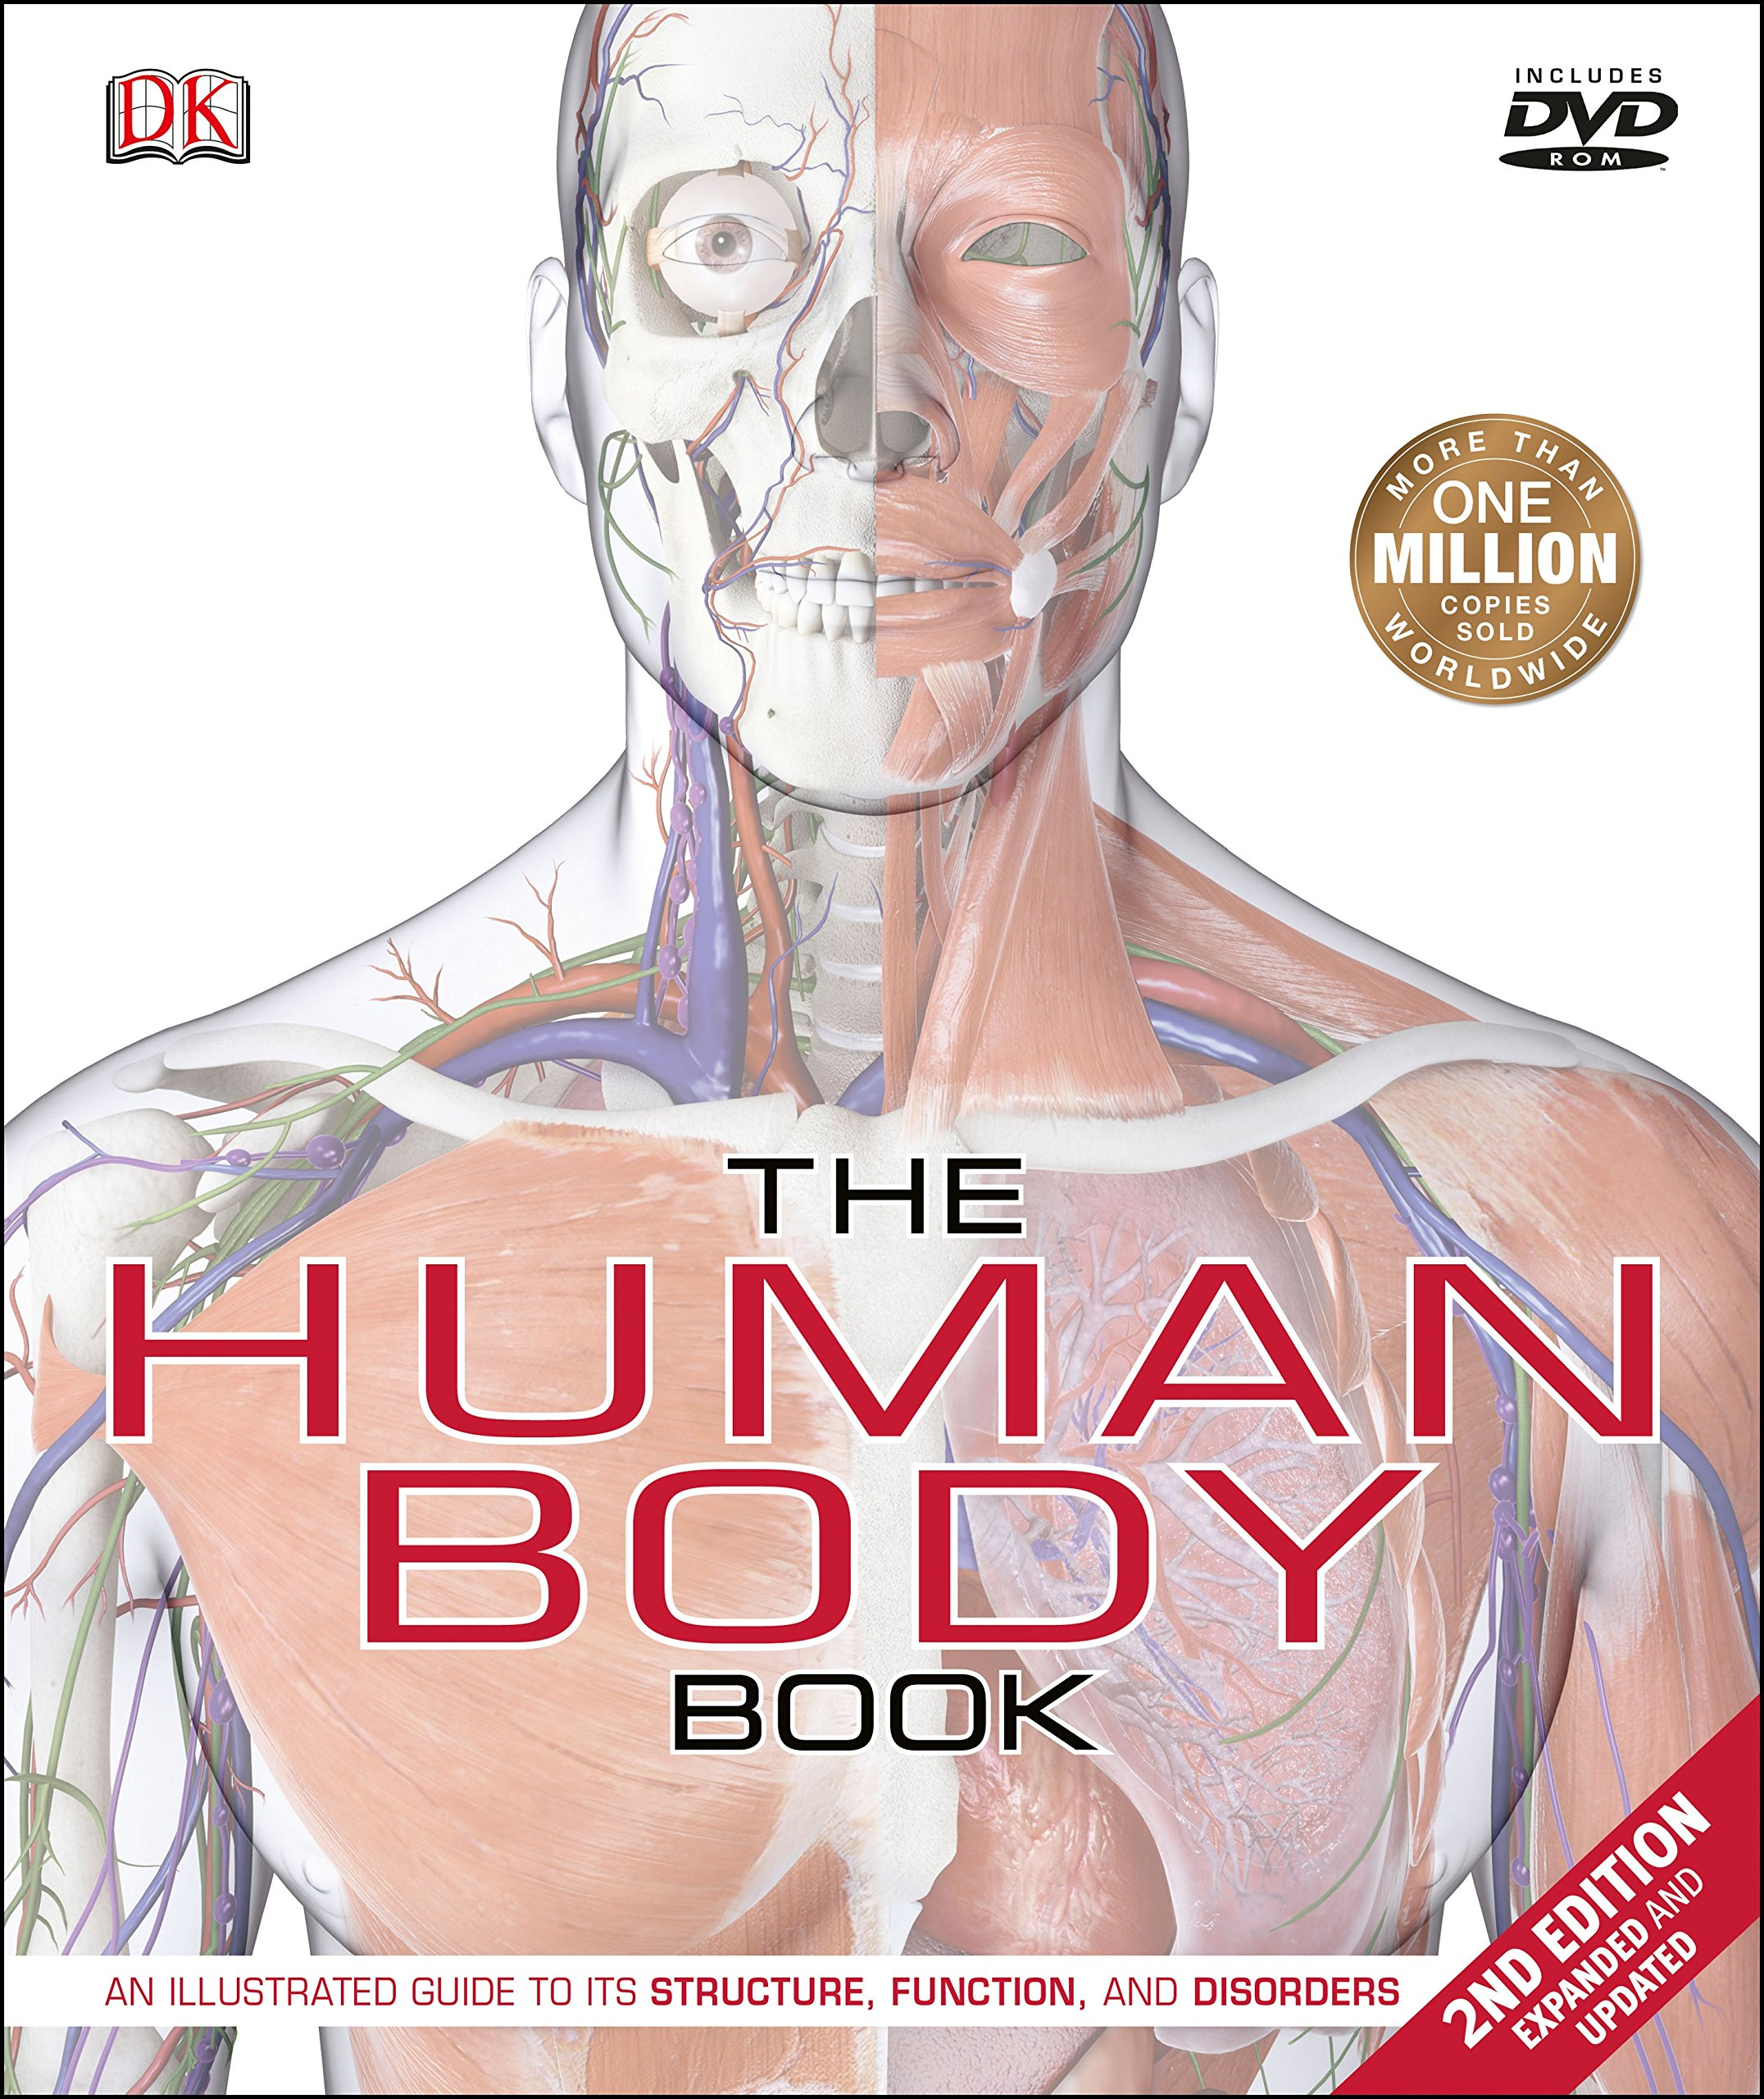 The physiology coloring book review